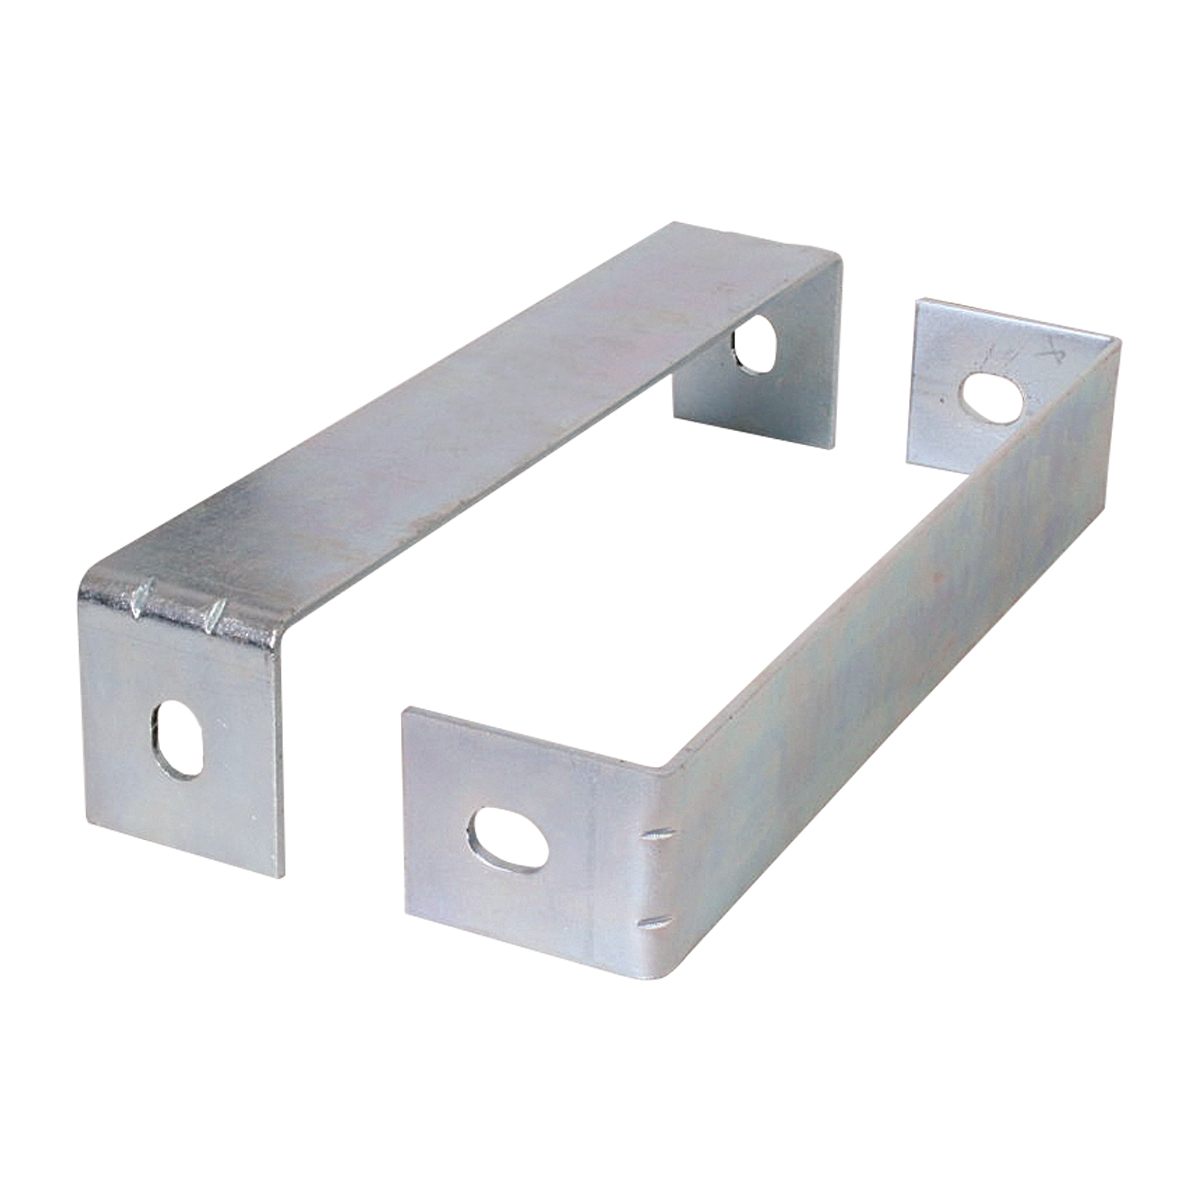 Chrome Plated Steel Rear Center Panel with Backing Plate Only - Brackets